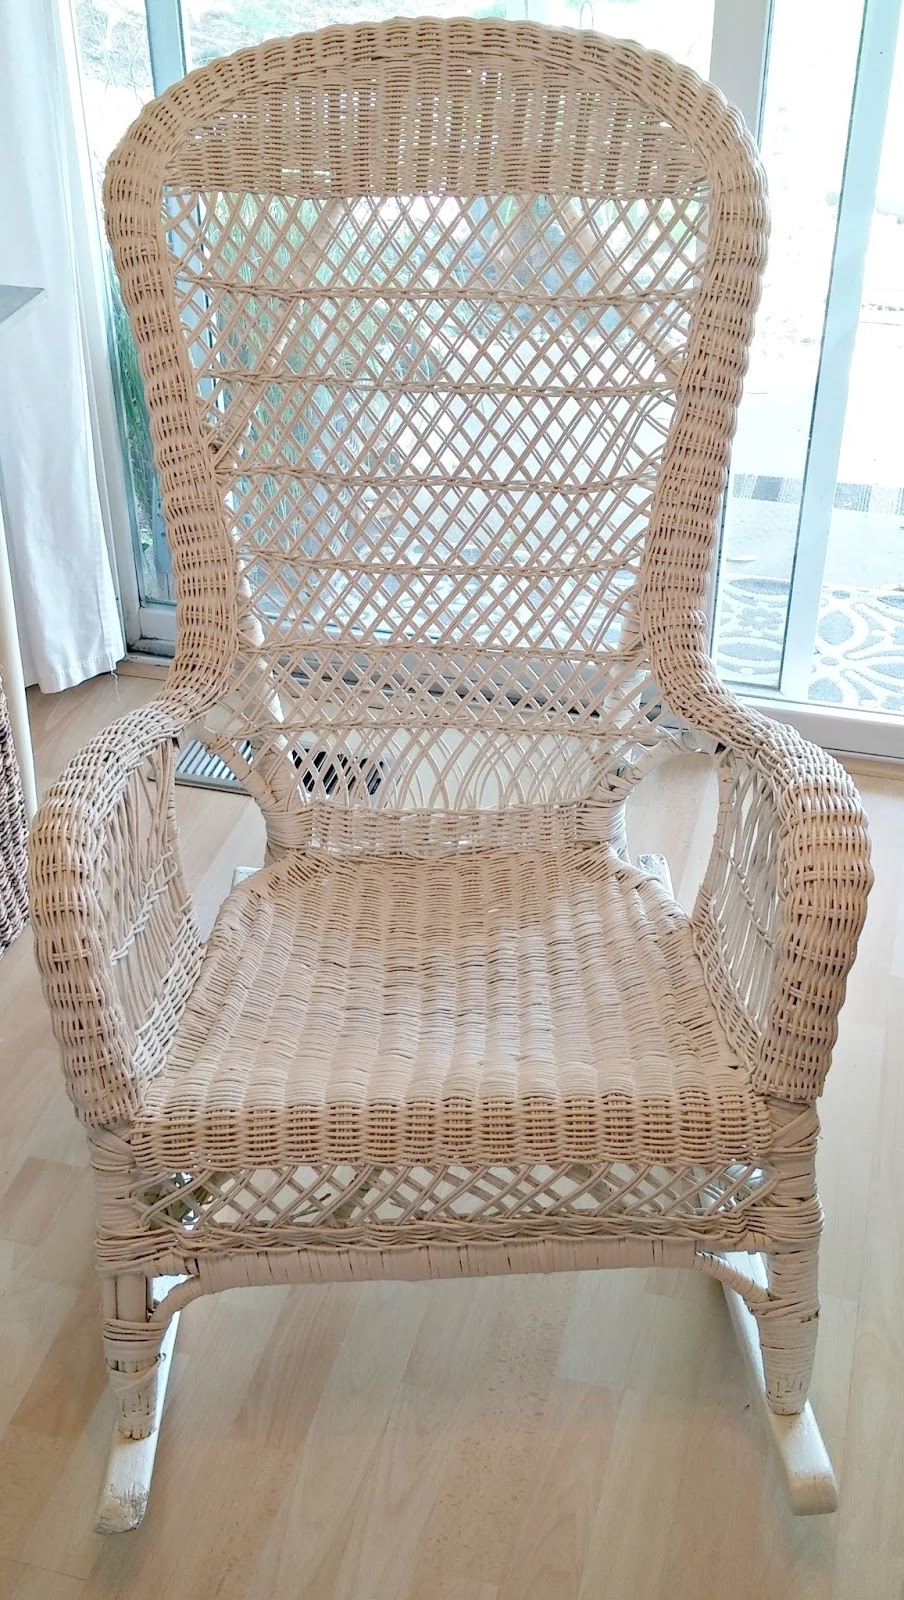 Famous Vintage Wicker Rocking Chair Makeover Little Cottage Antique P Within Antique Wicker Rocking Chairs With Springs (View 9 of 20)